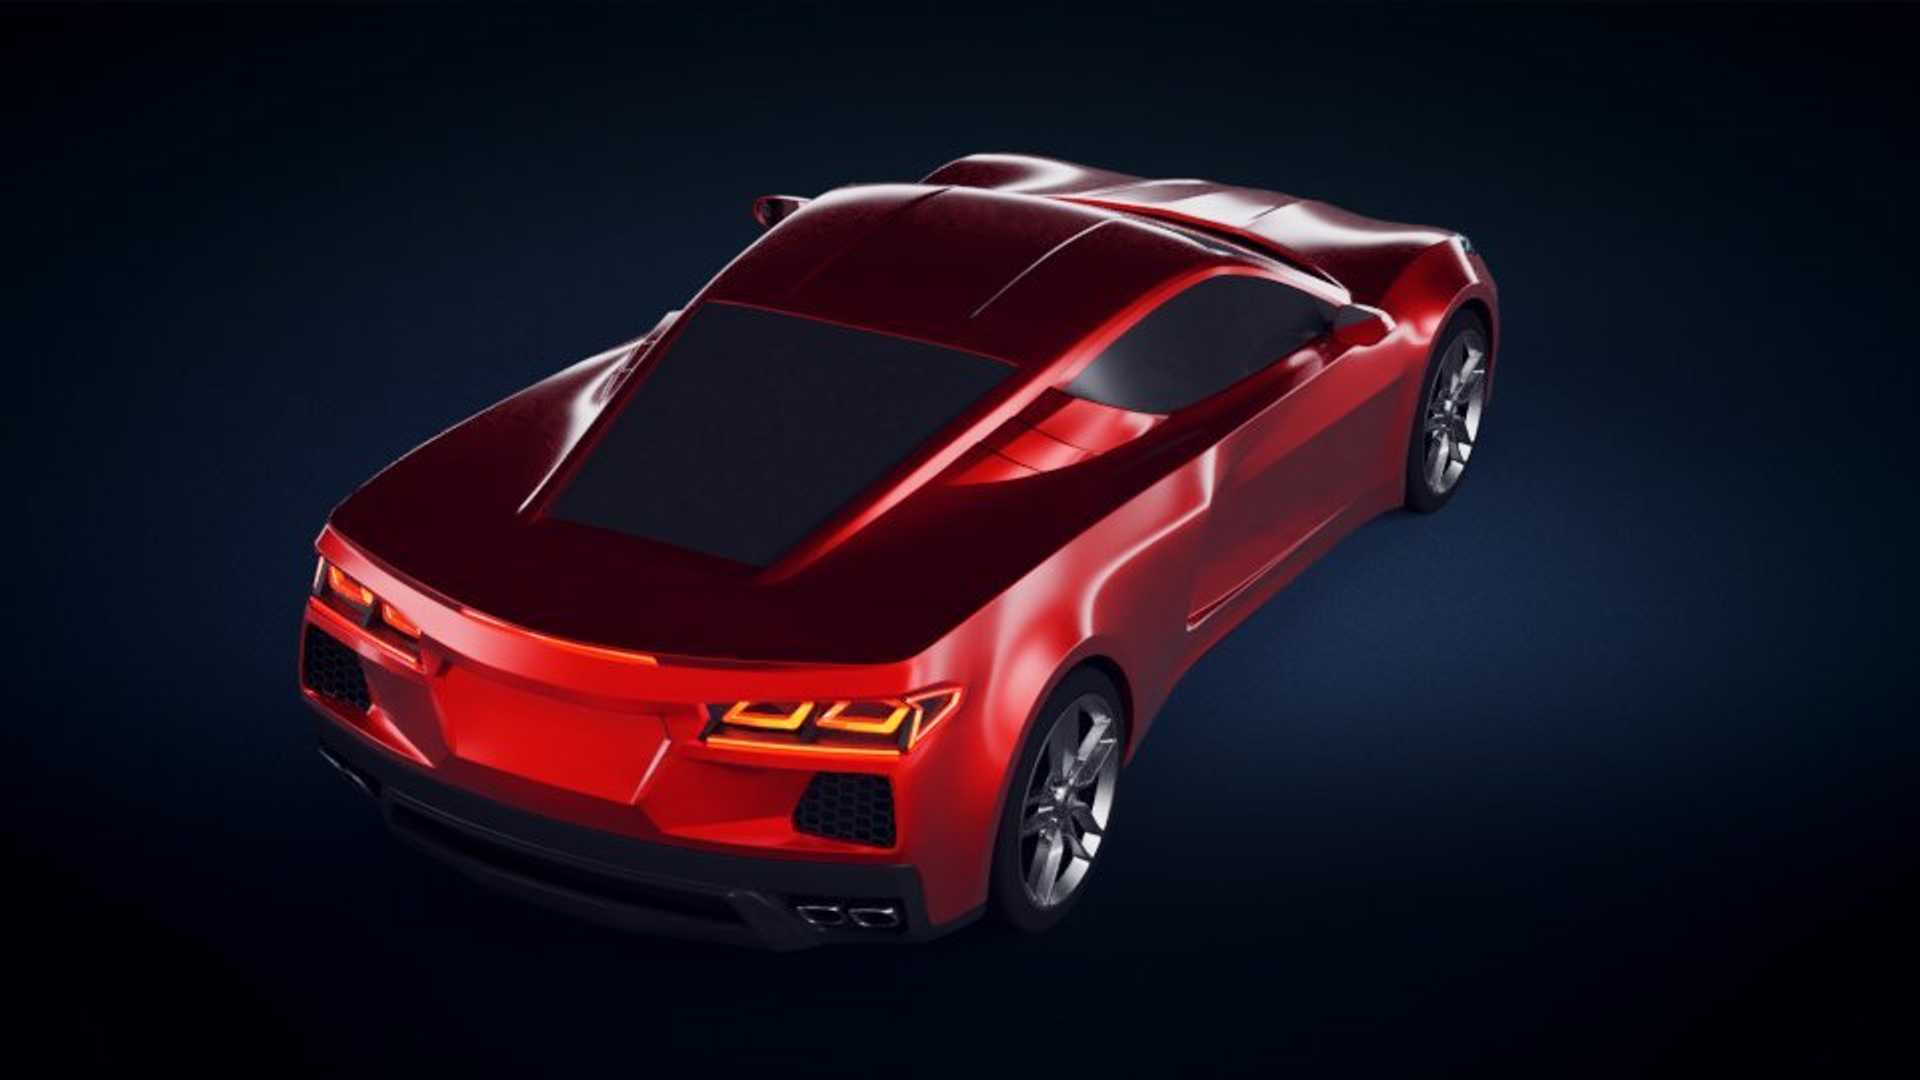 Do These Fresh Mid-Engined Corvette Renders Whet Your ...